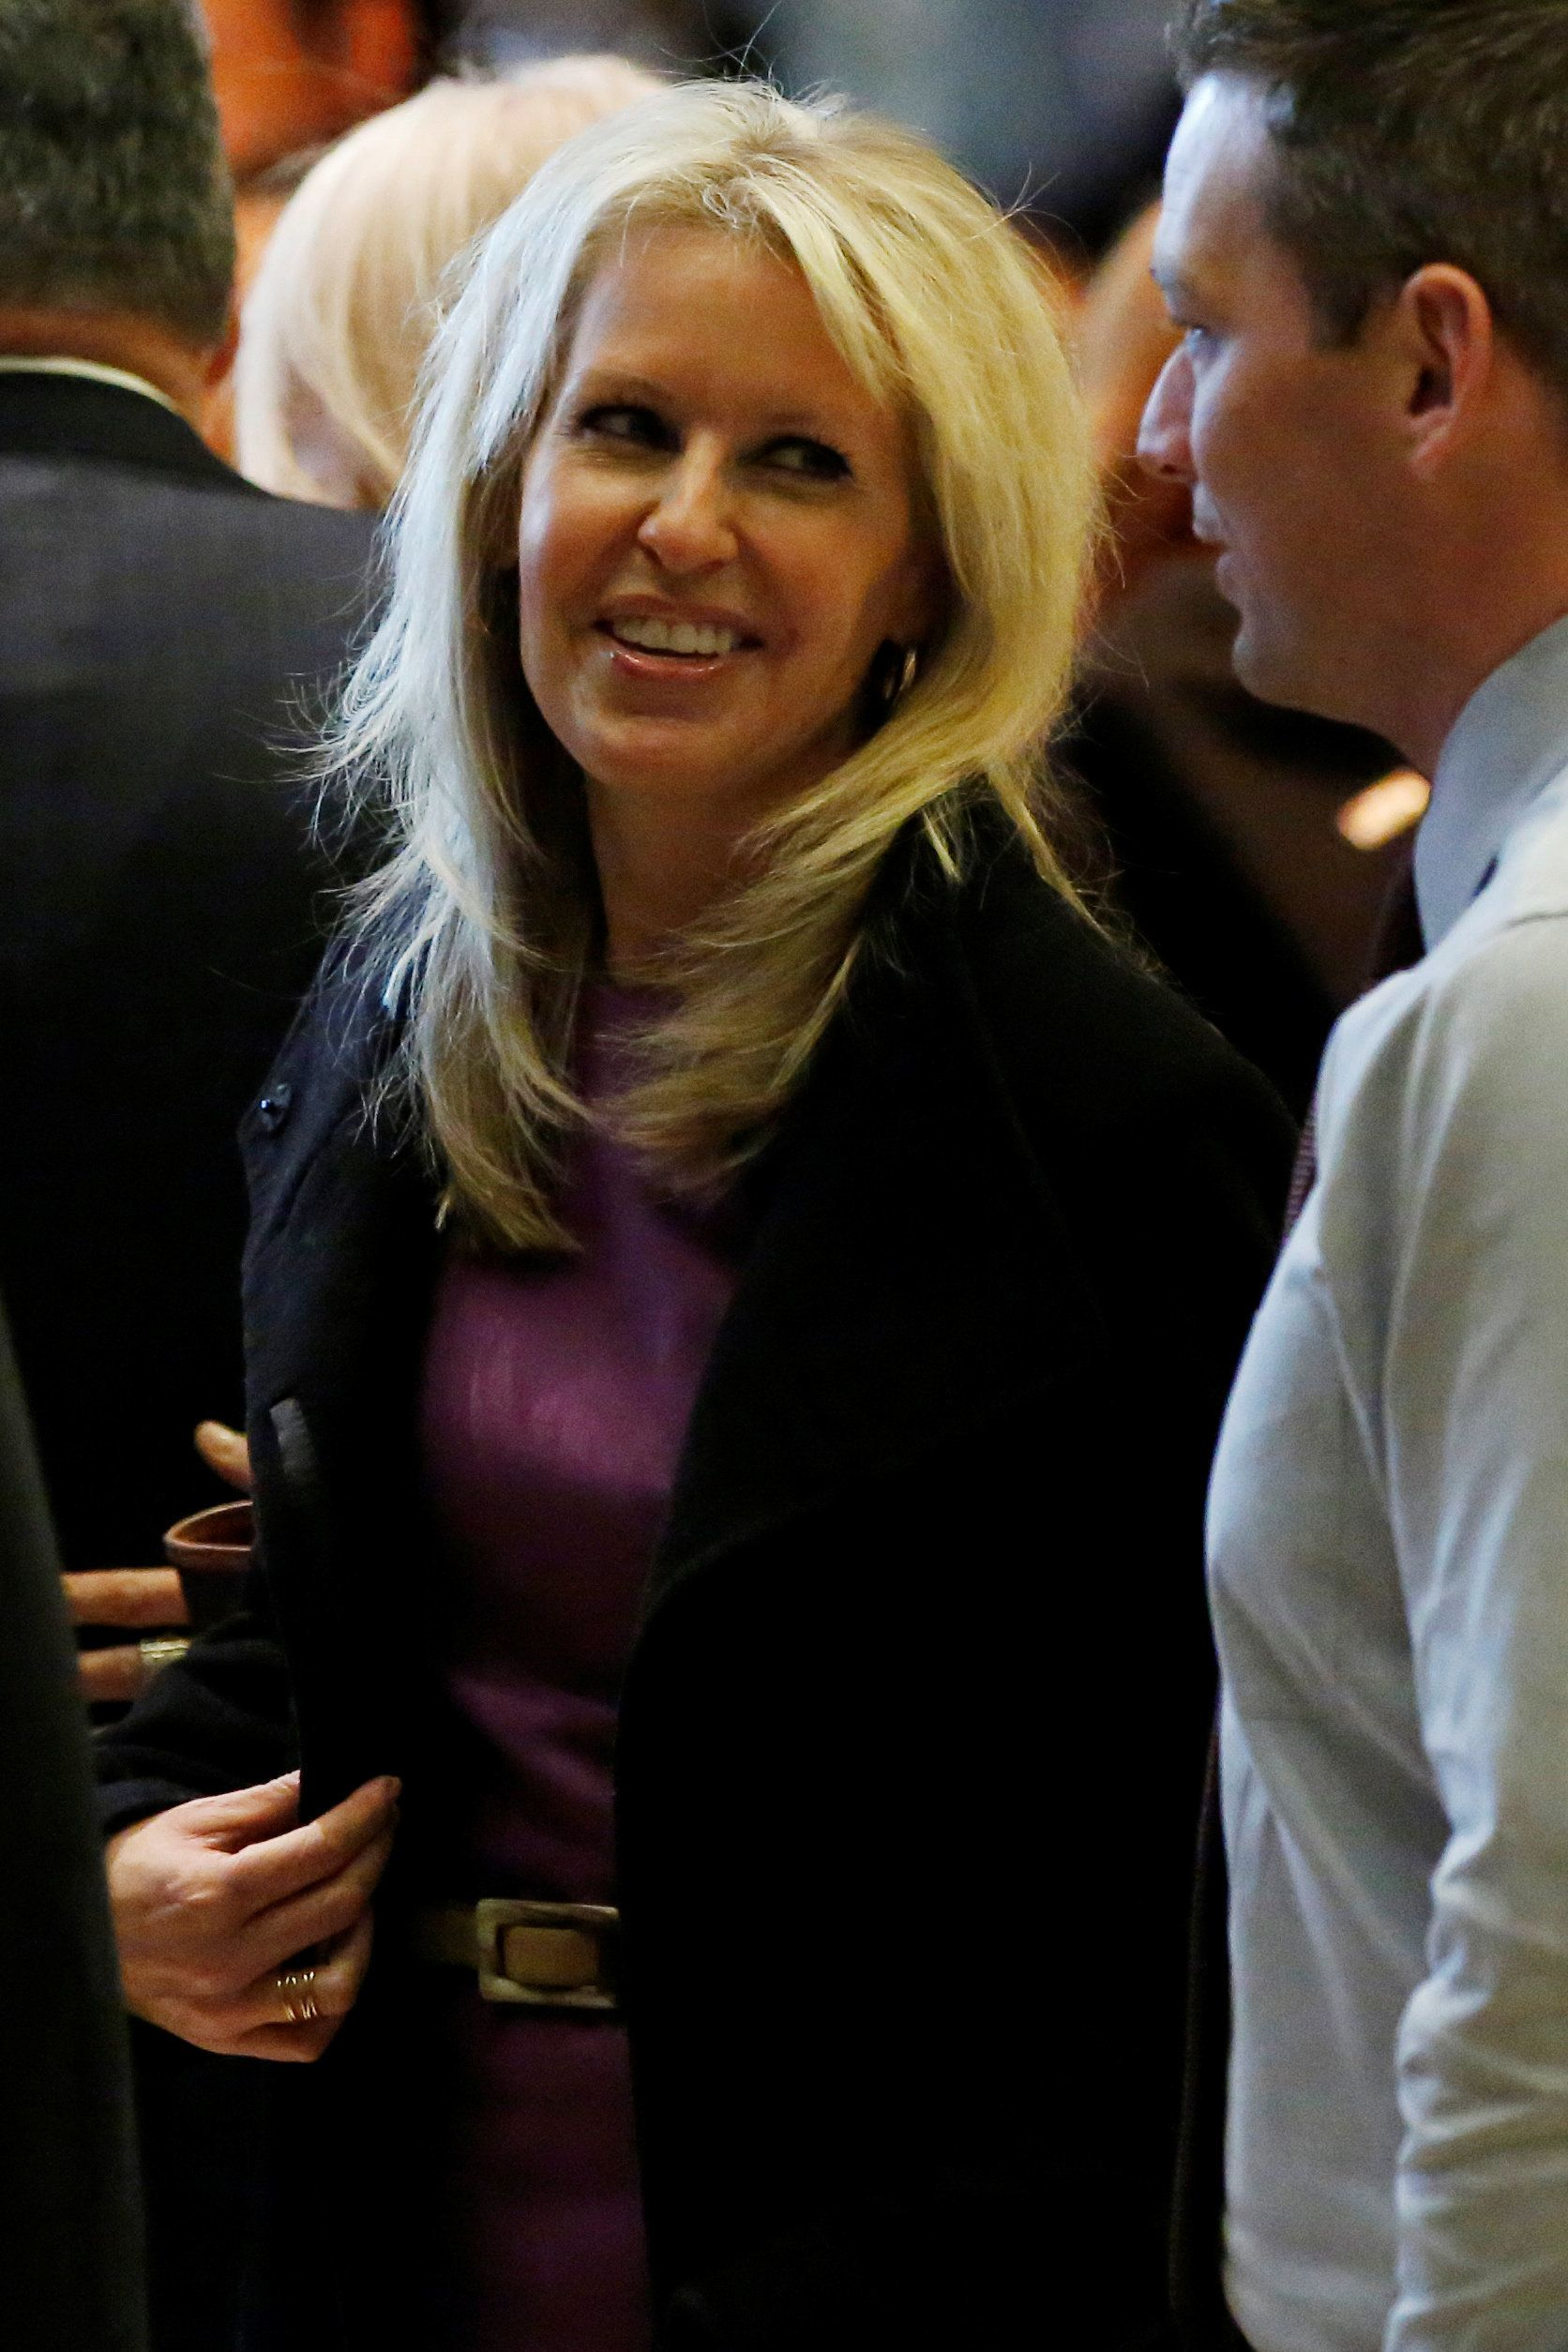 Monica Crowley, talk radio personality, stands in the lobby of Trump Tower in Manhattan, New York, U.S., December 15, 2016. REUTERS/Shannon Stapleton